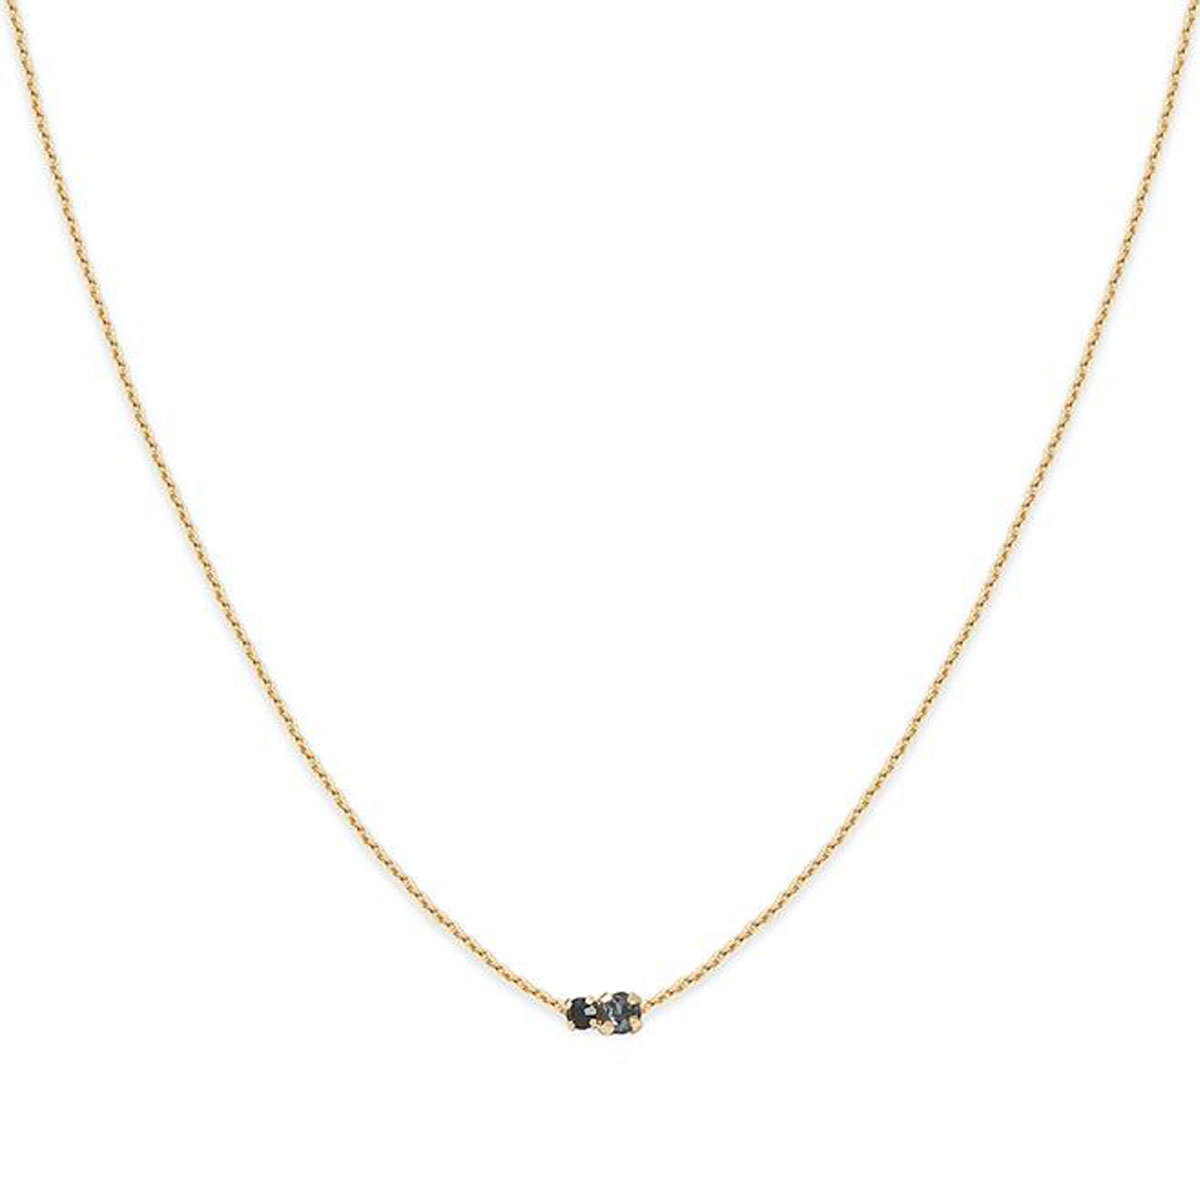 Collier AMANTS strass night